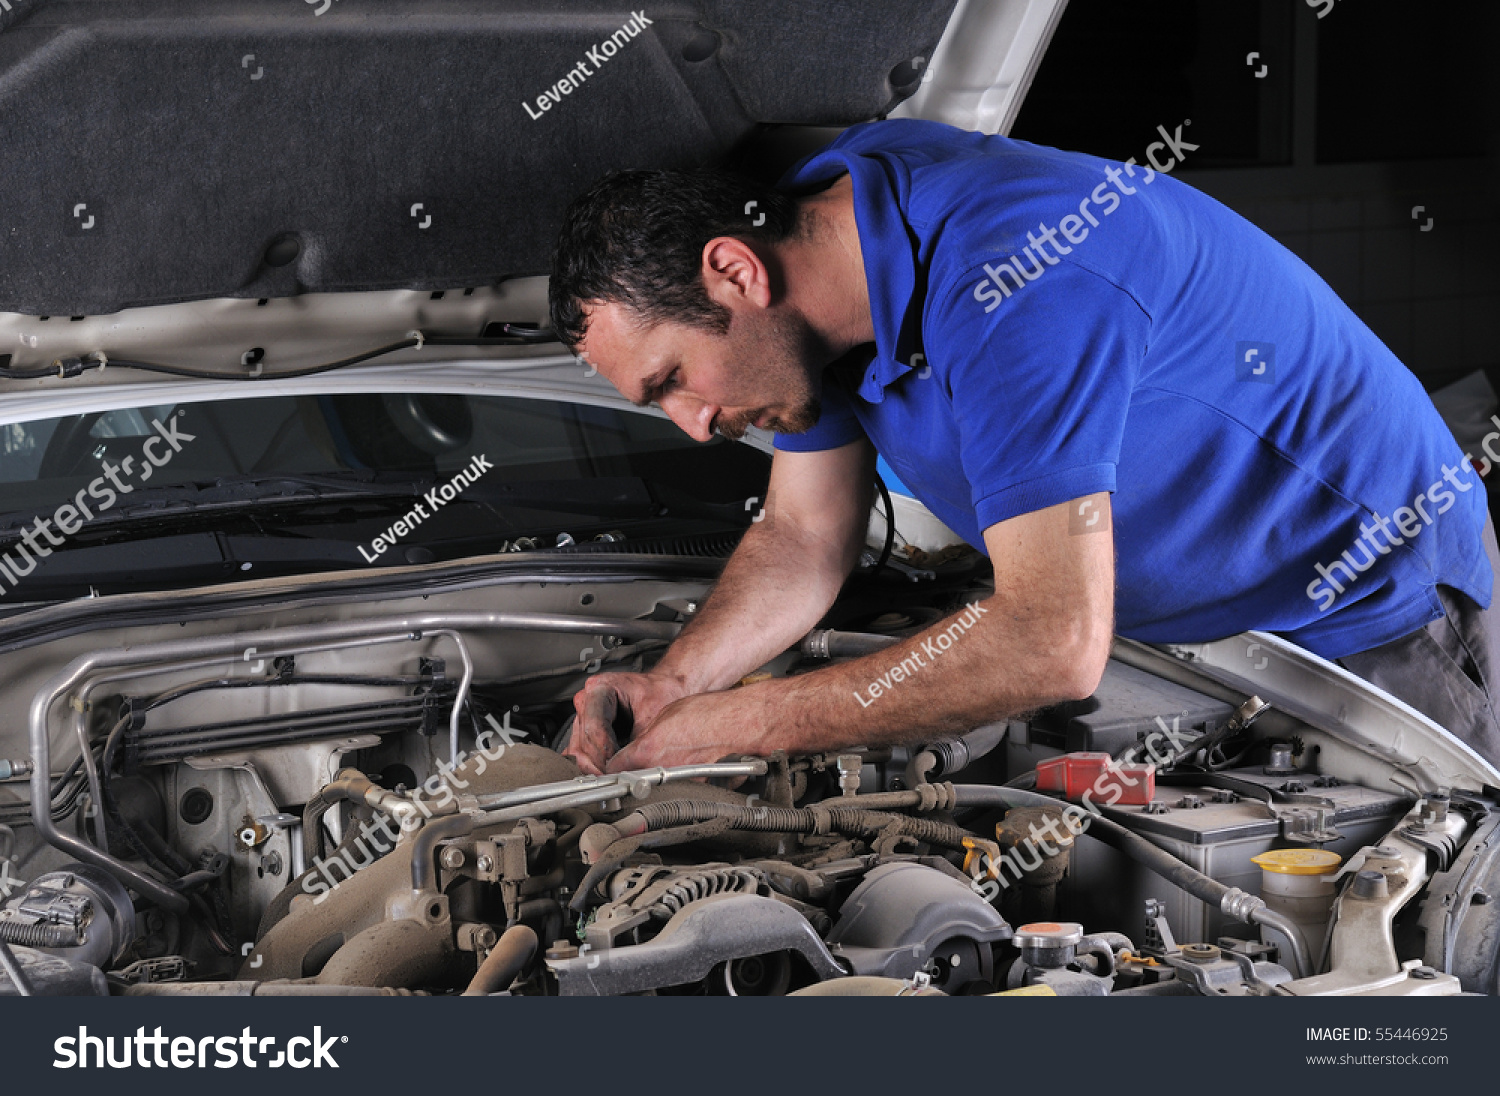 how to become a car mechanic